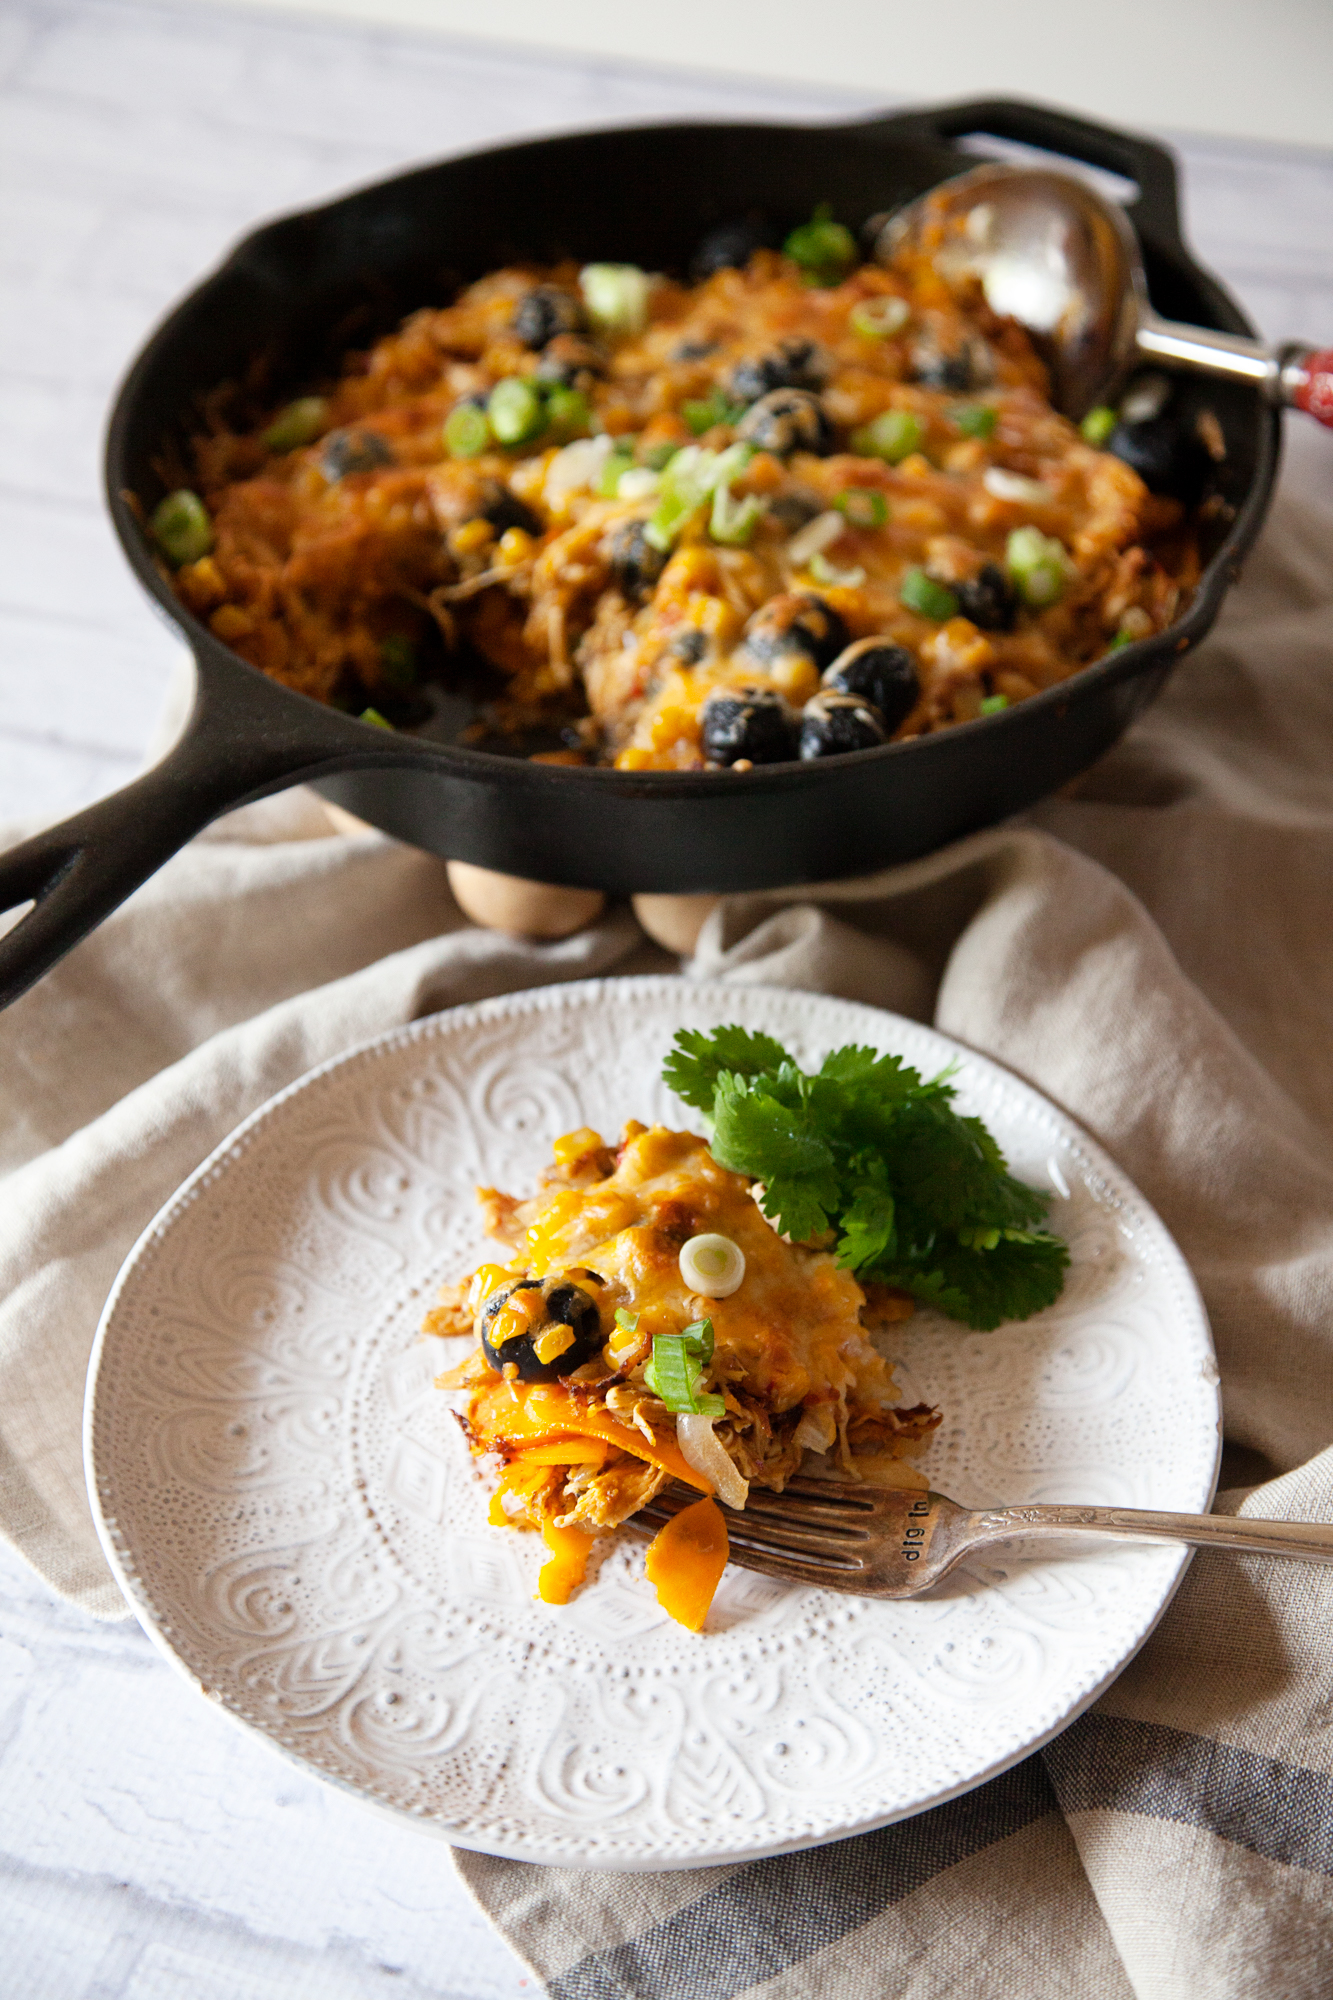 Easy weeknight meal - Chicken and Sweet Potato Skillet